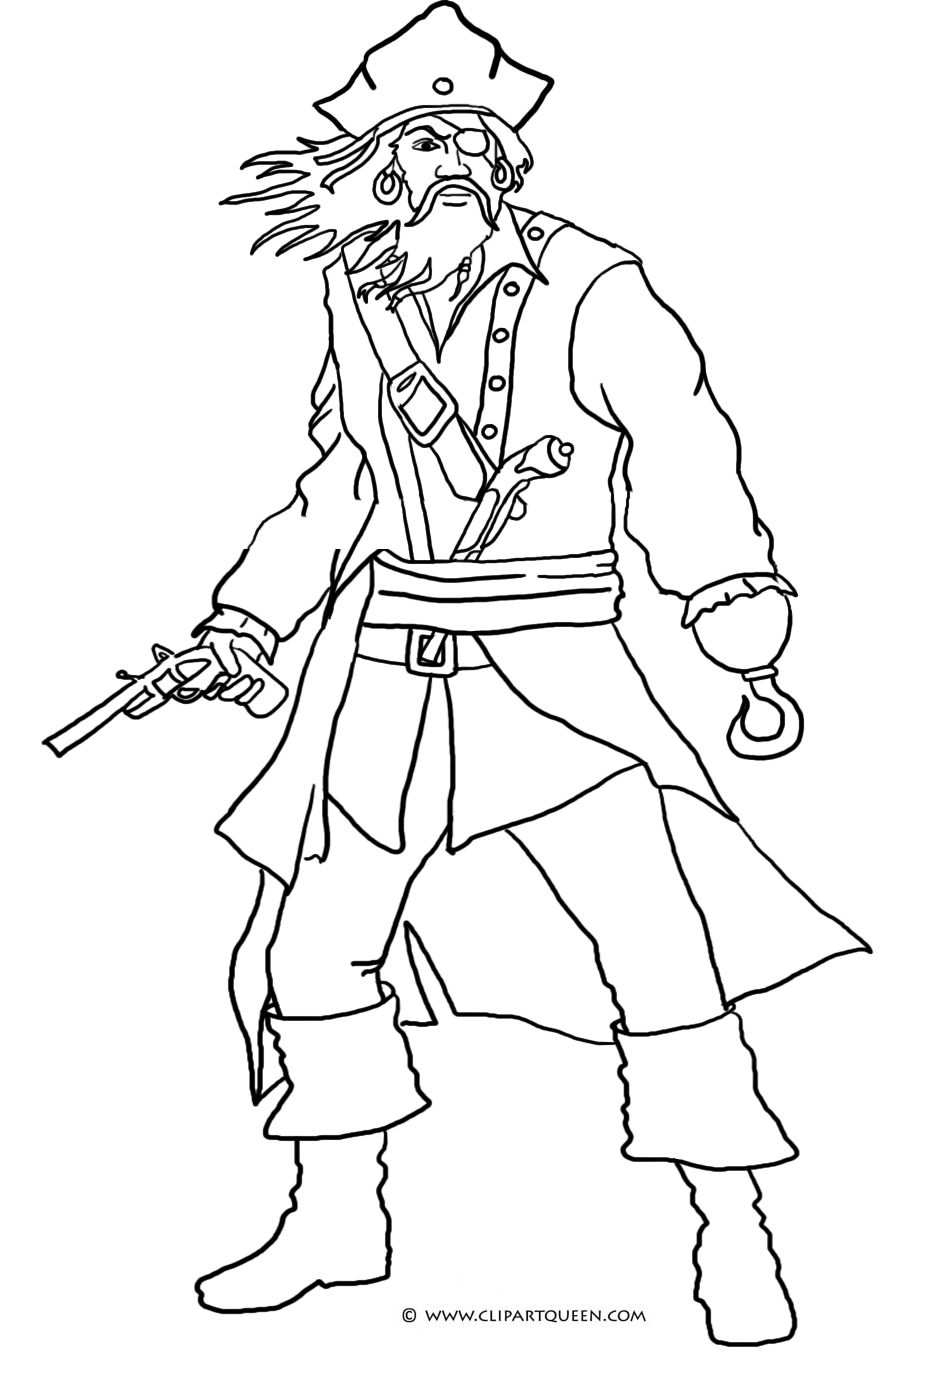 Pirate Coloring Pages Pirate Coloring Pages Coloring Pages Pirates